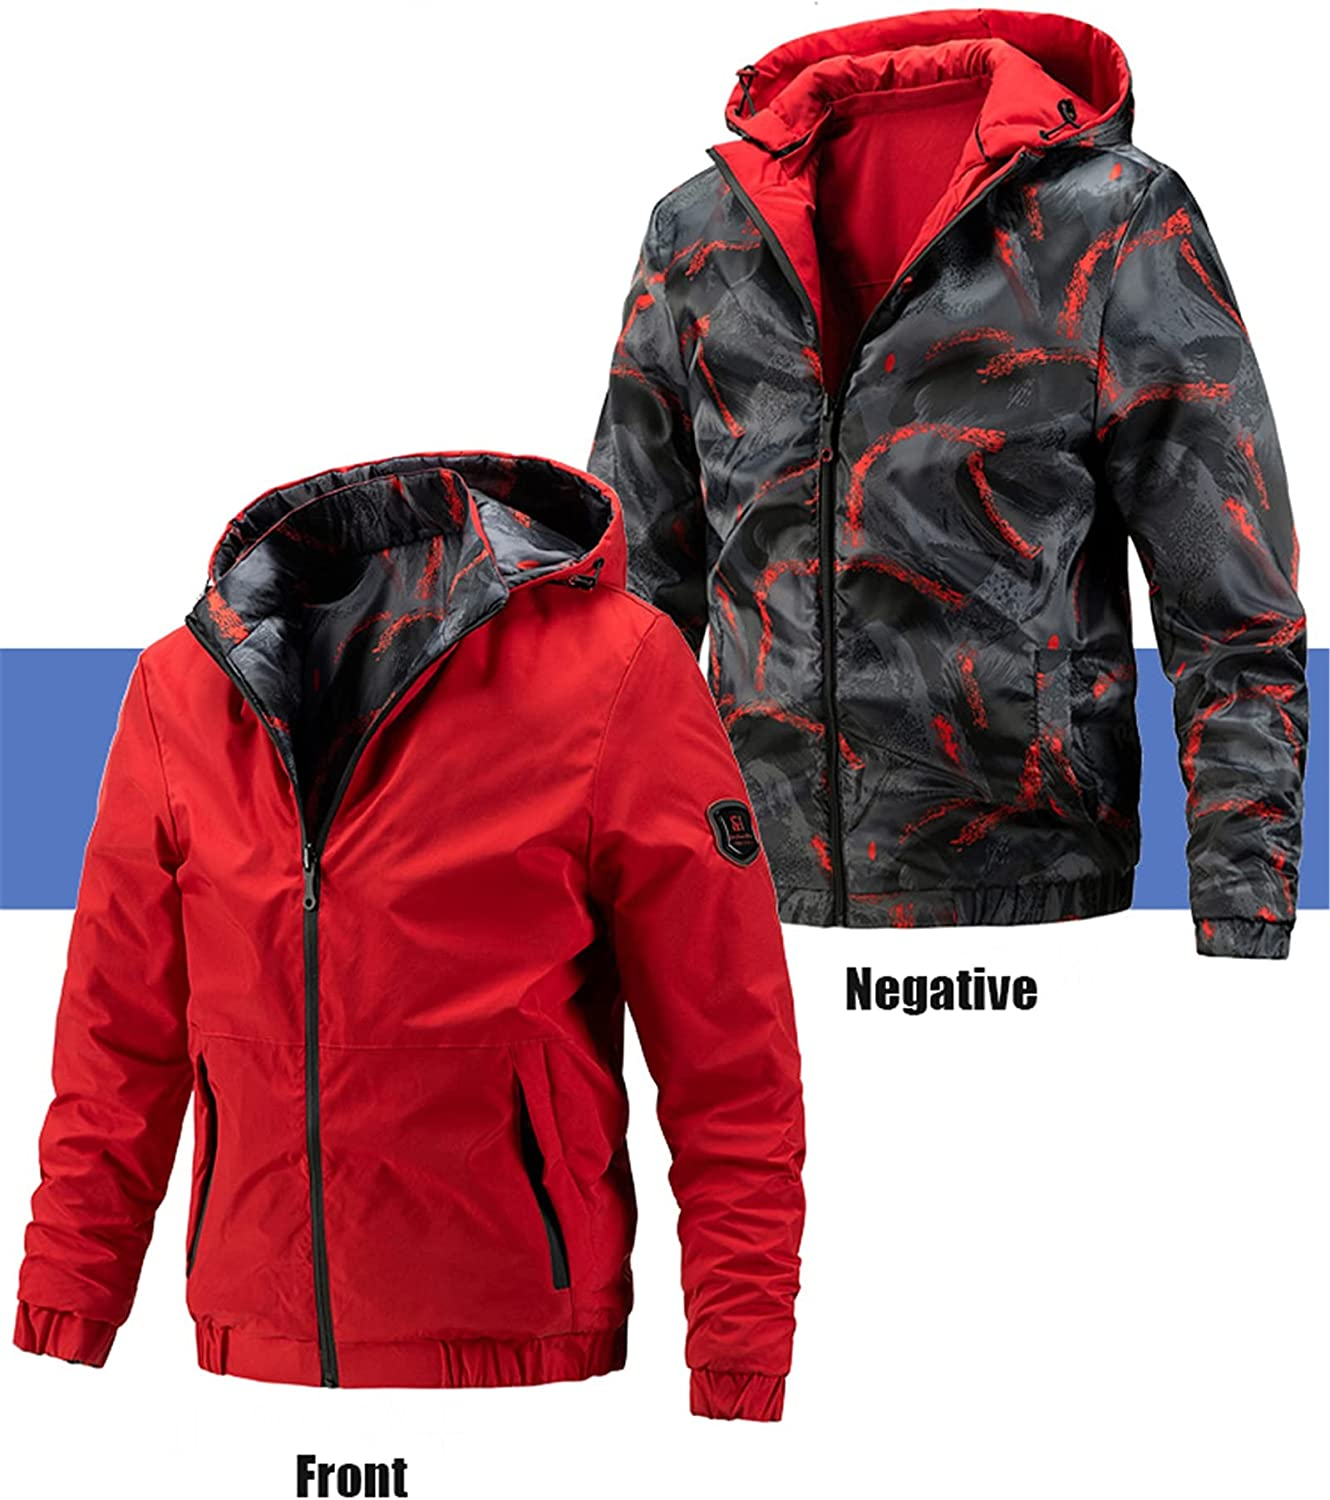 Mens Classic Hooded Jacket,Casual Reversible Outerwear,for Teenagers' Daily Outdoor Wear